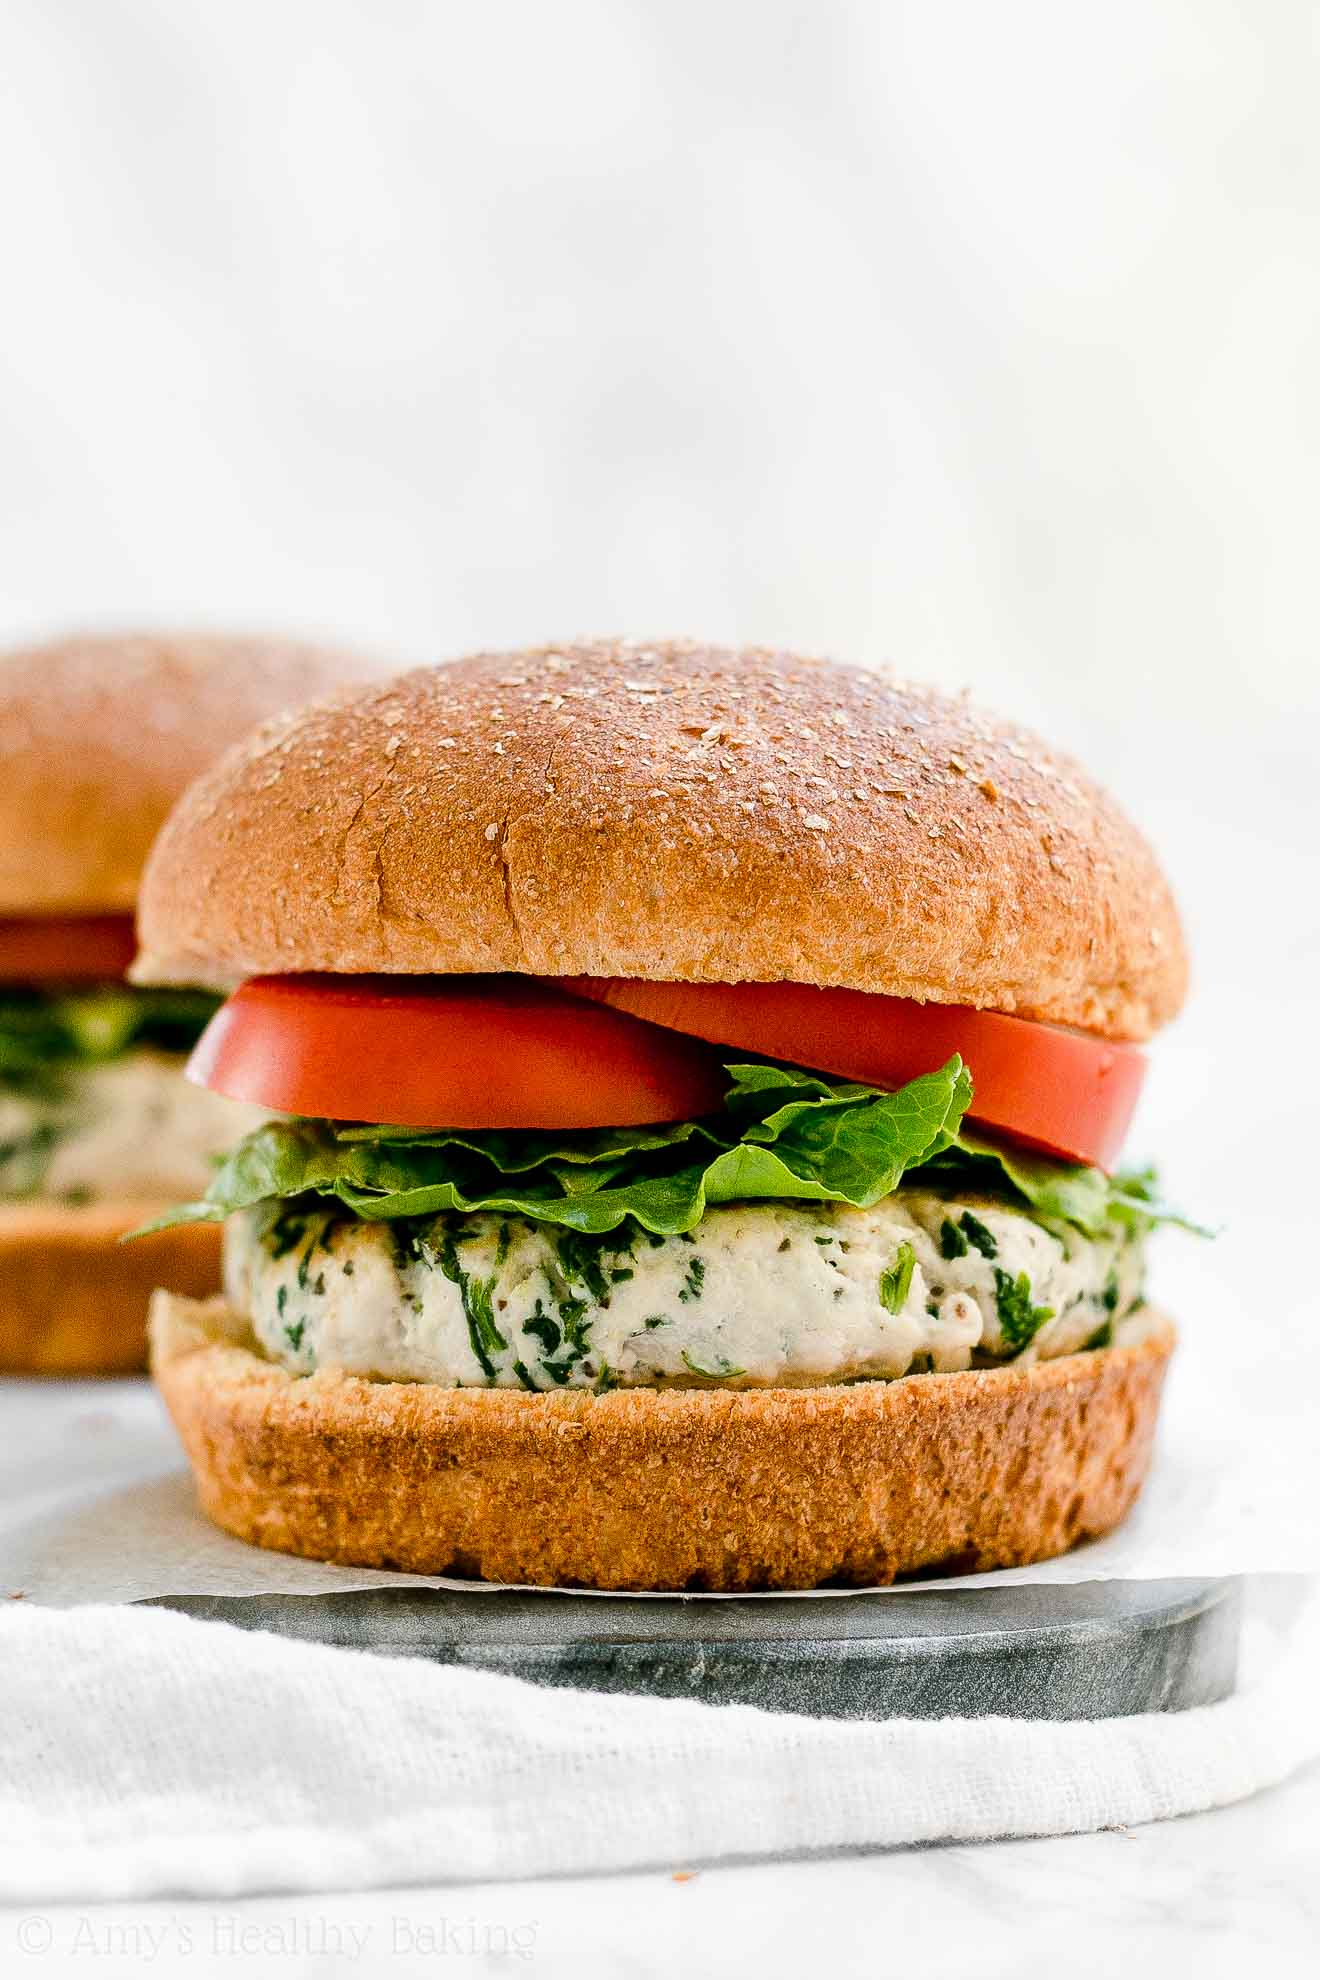 Best Ever Healthy Turkey Burgers that are moist & juicy